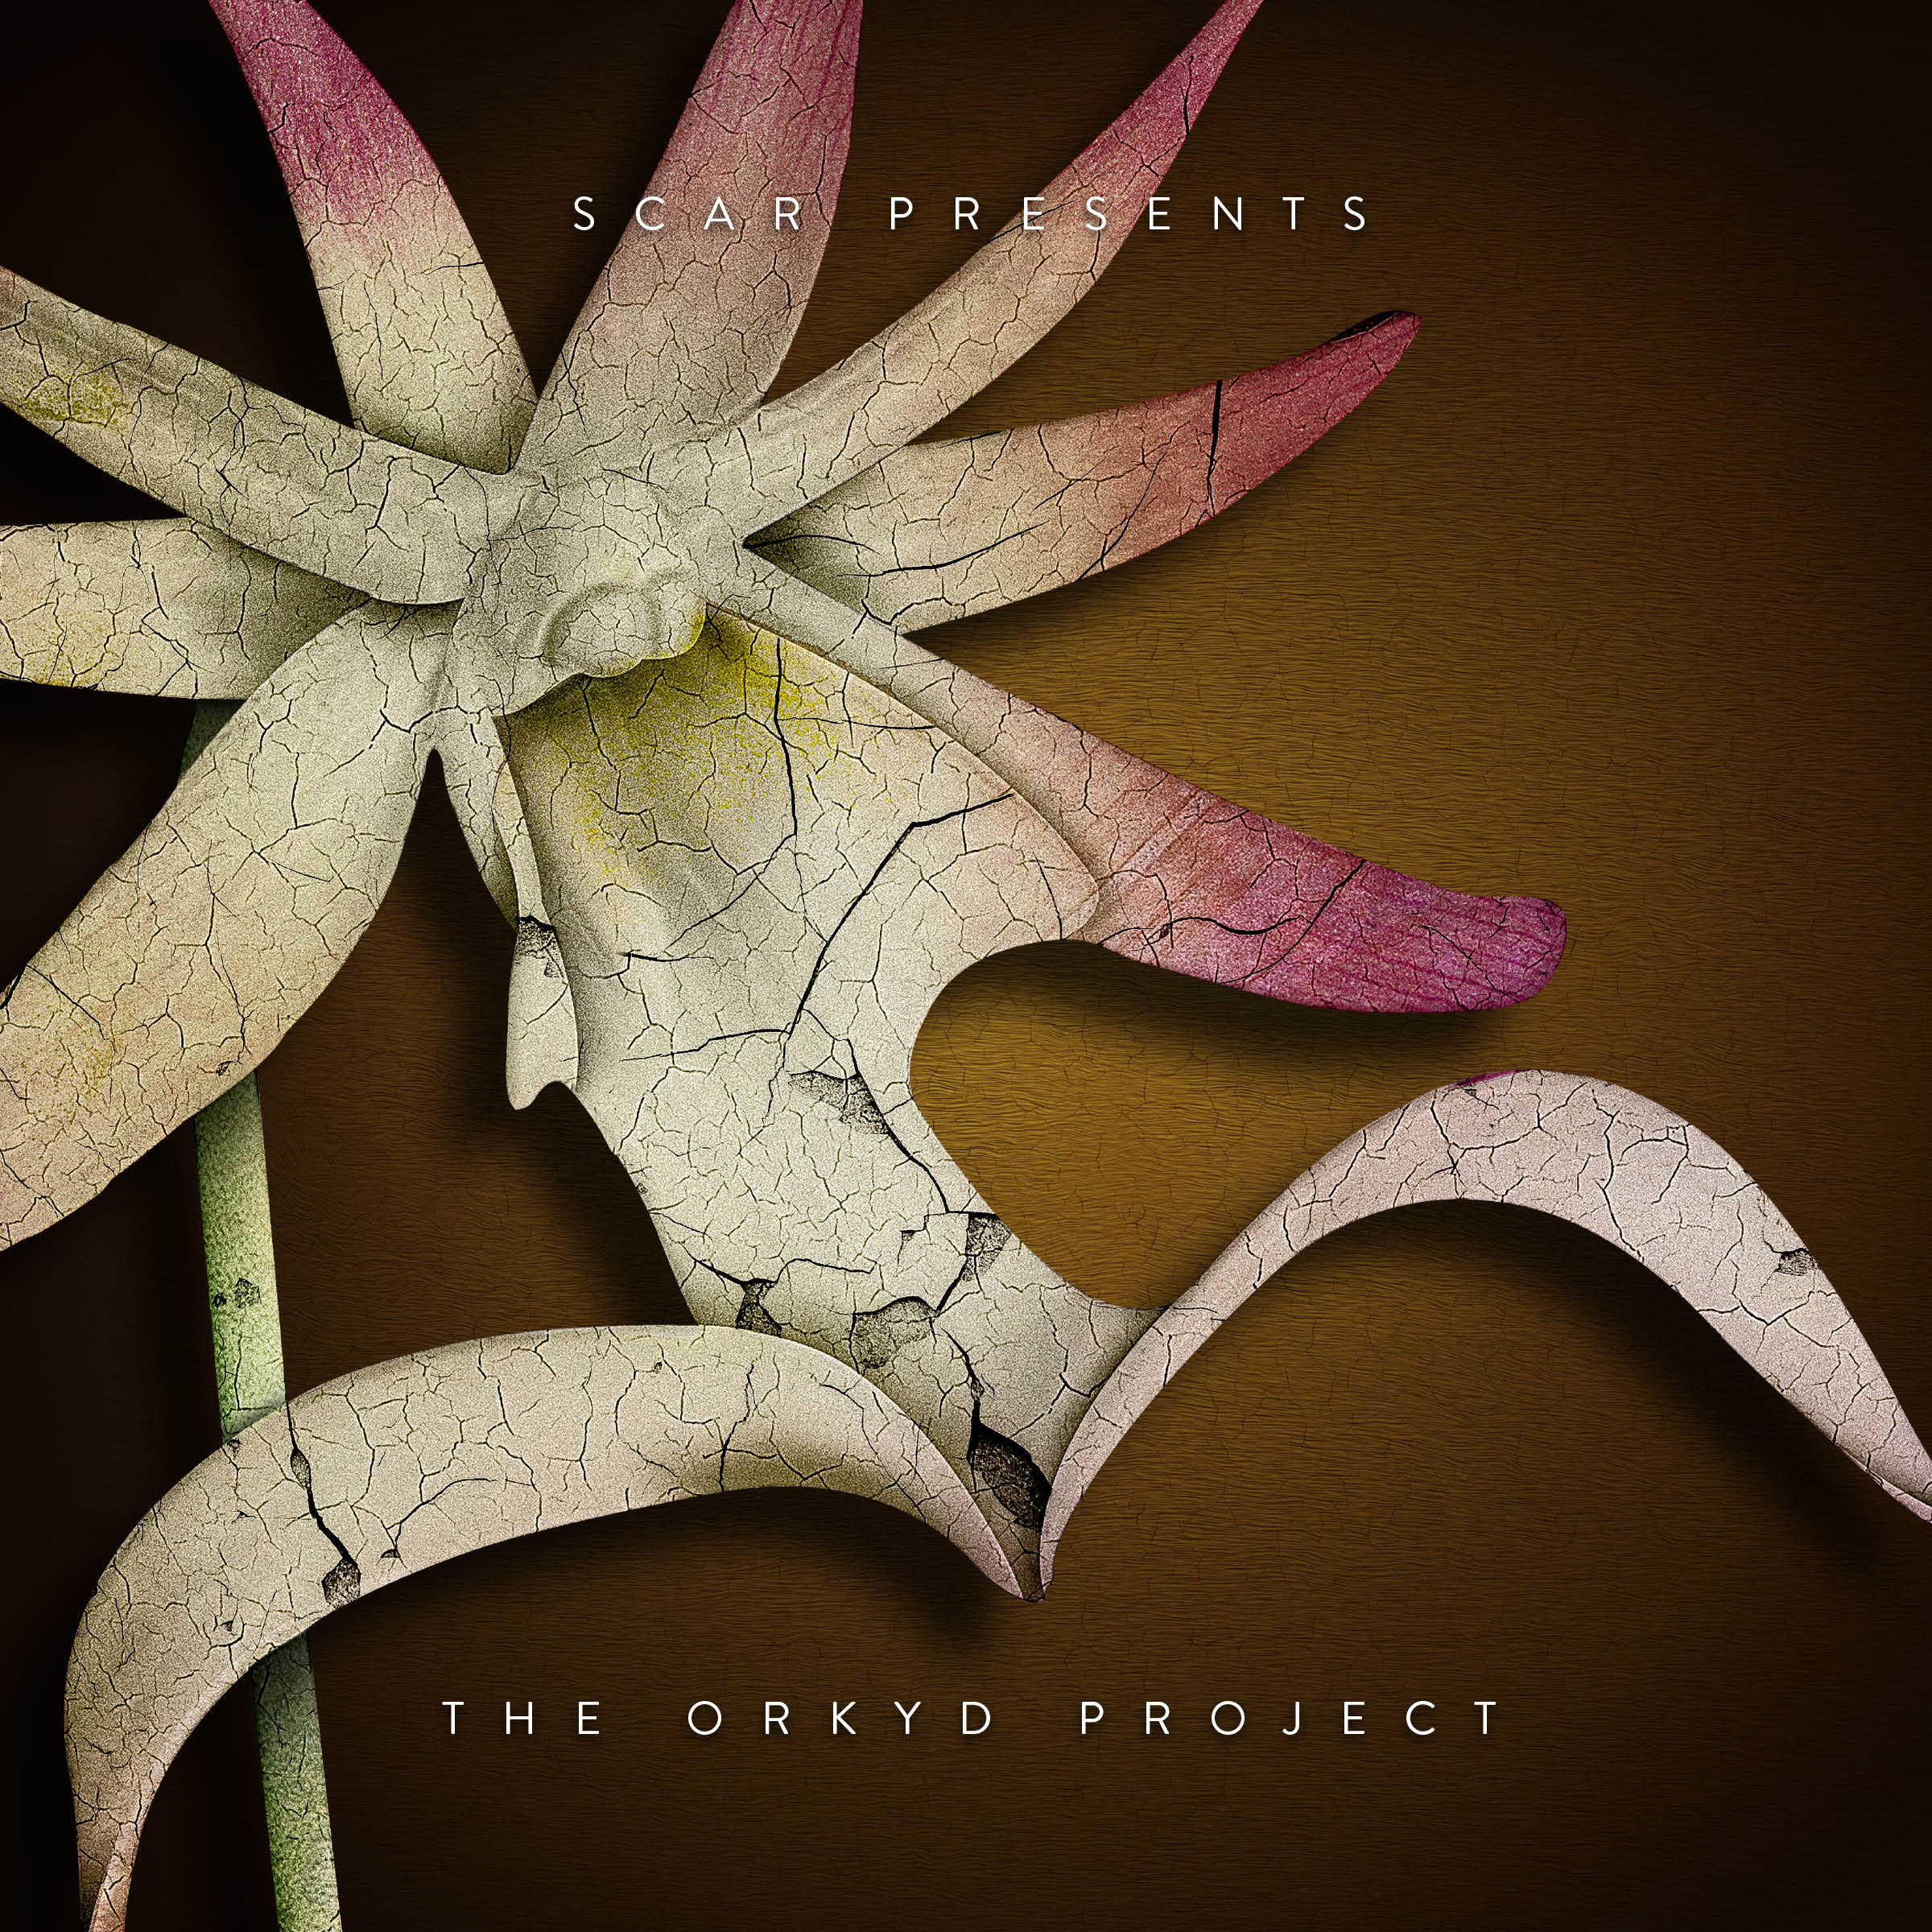 Scar/THE ORKYD PROJECT CD